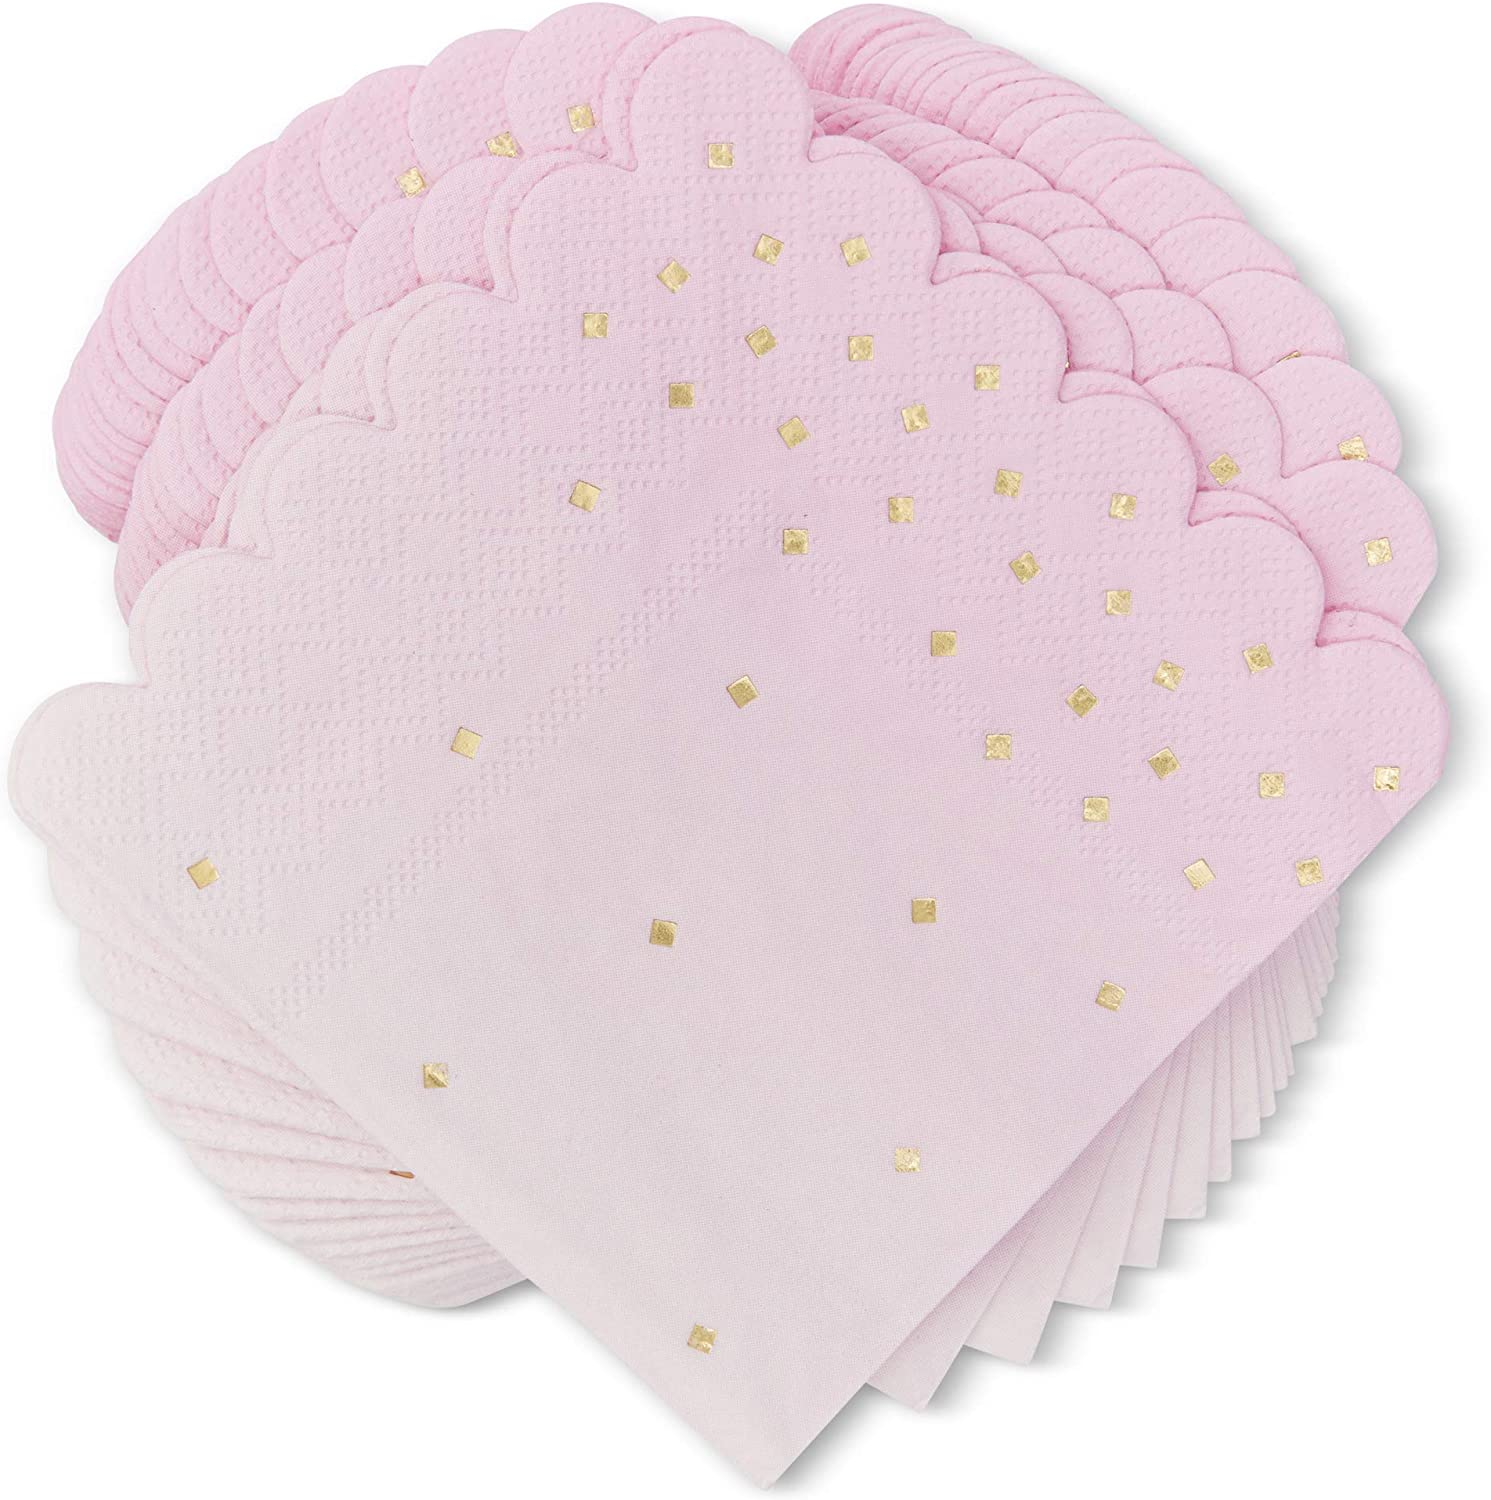 Ombre Cocktail Party Napkins, (5 x 5 in, Pink, 100-Pack)